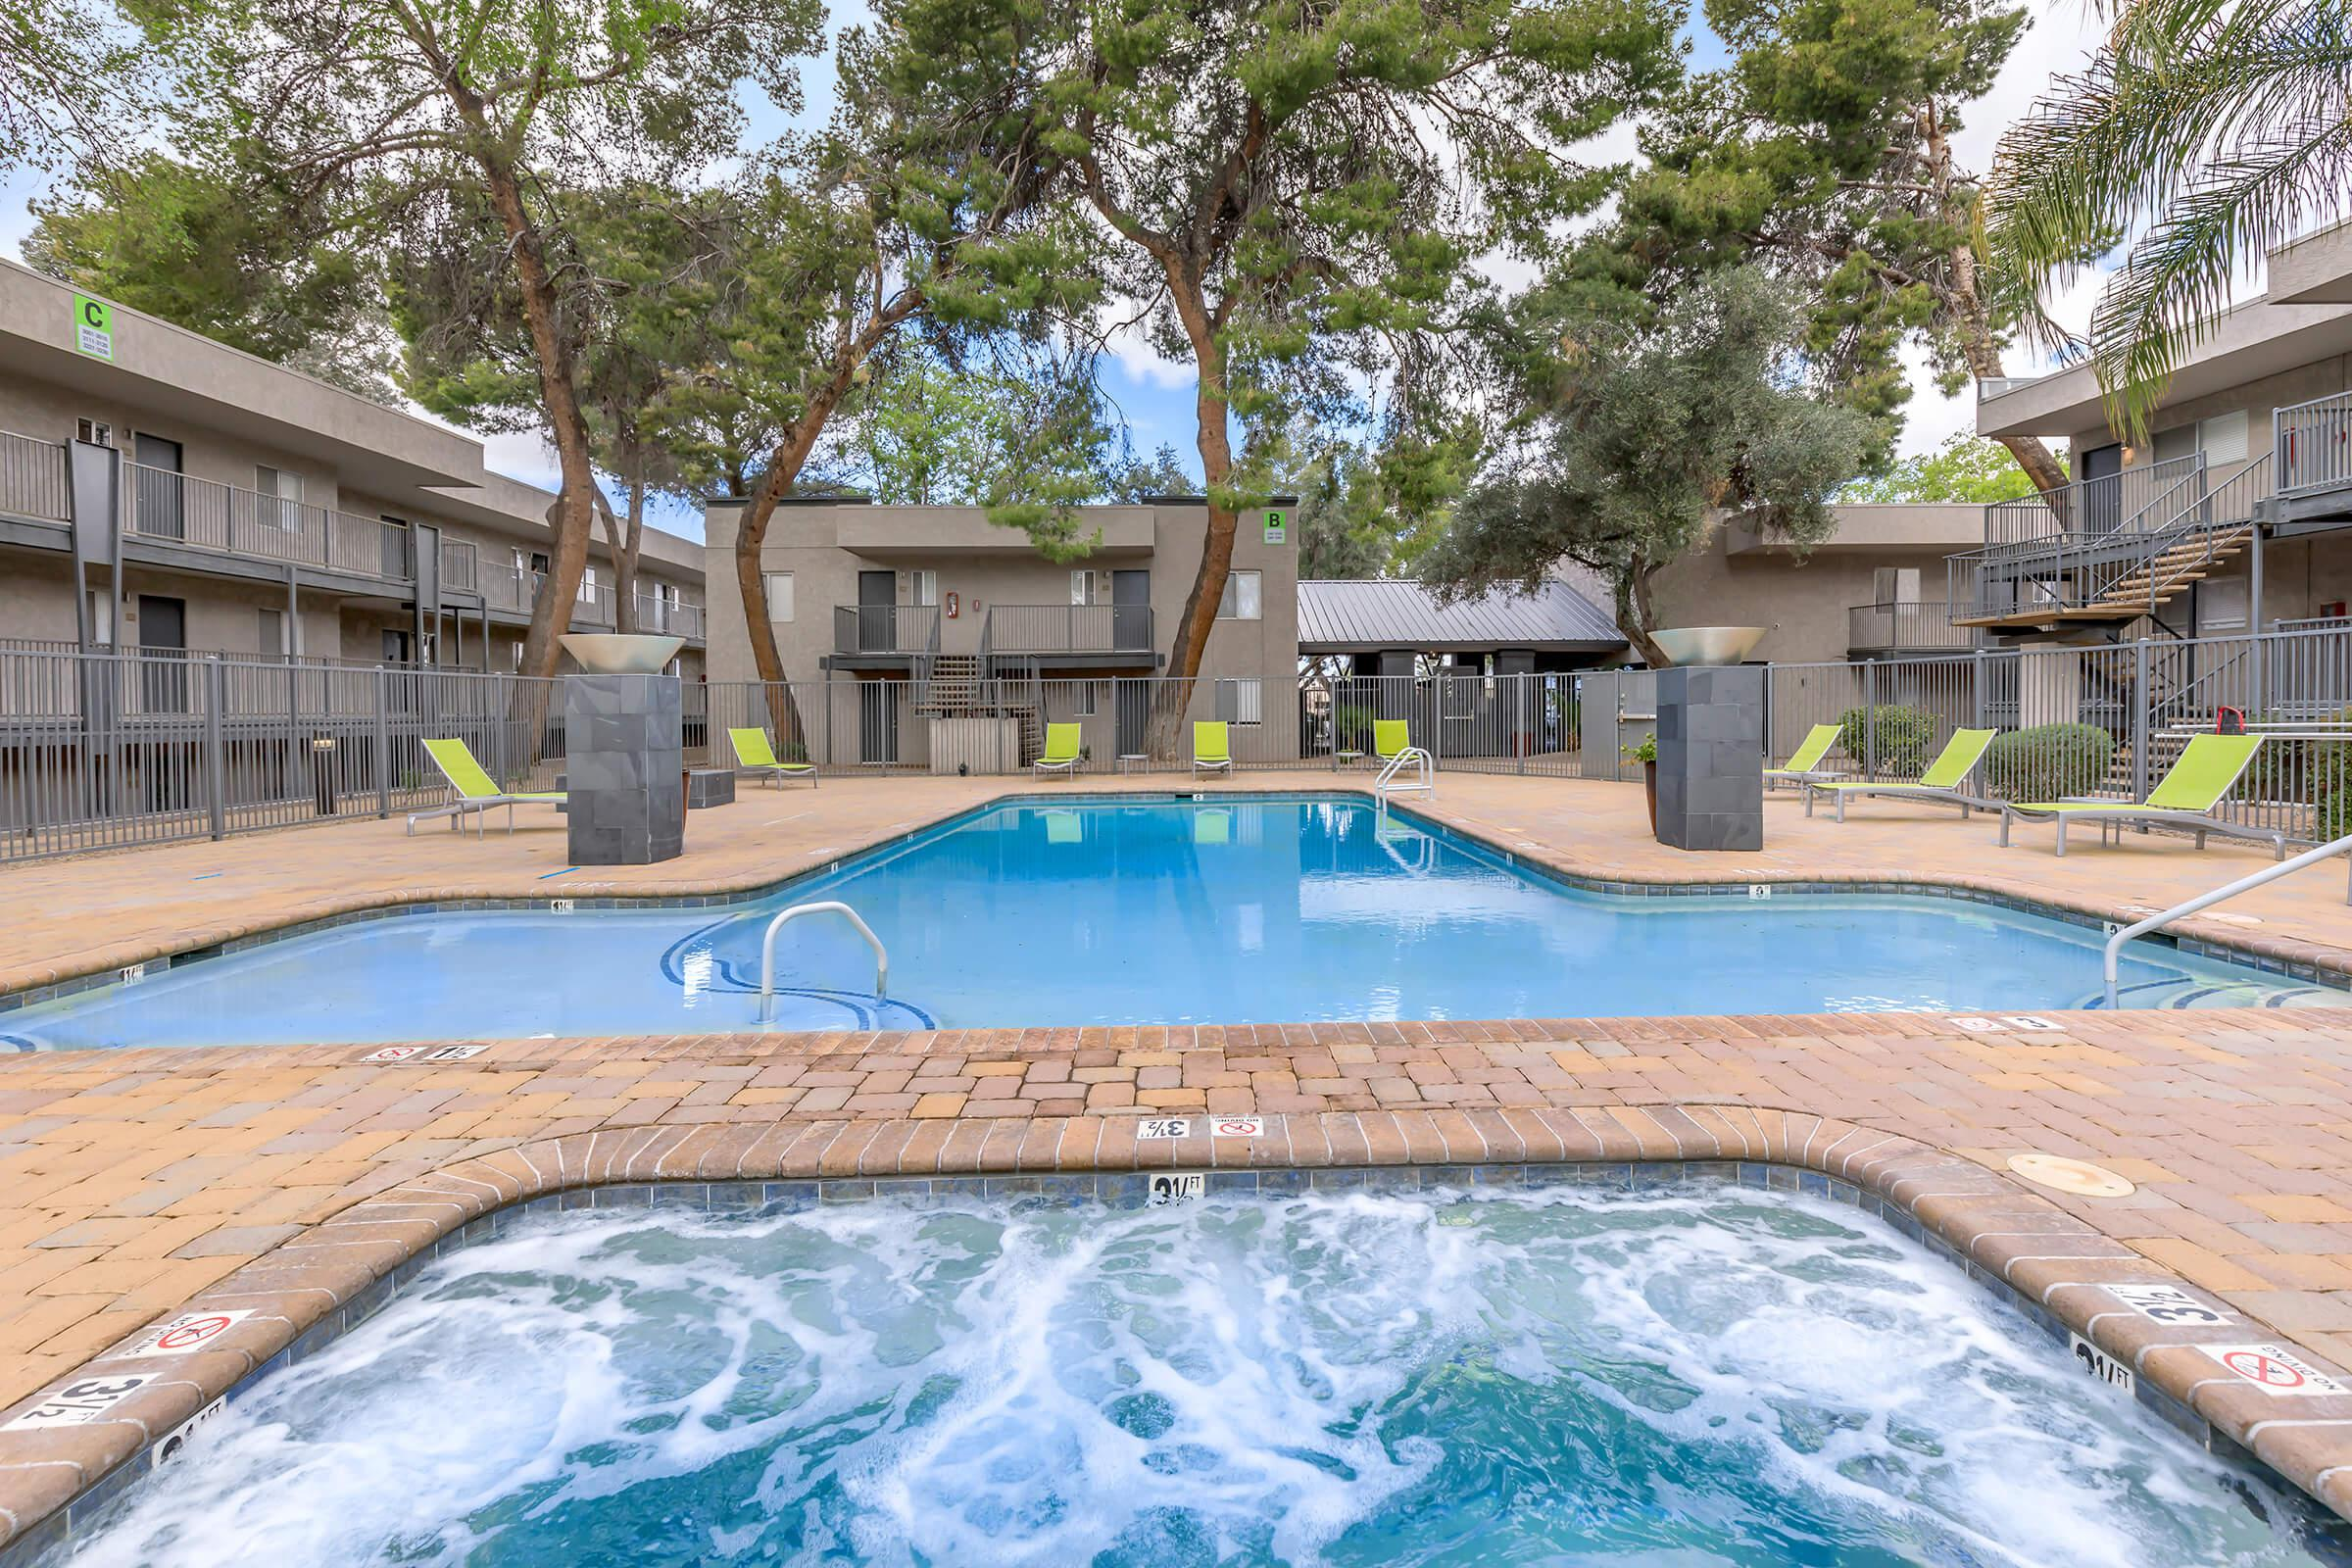 RELAX IN THE SOOTHING SPA AND SHIMMERING SWIMMING POOL